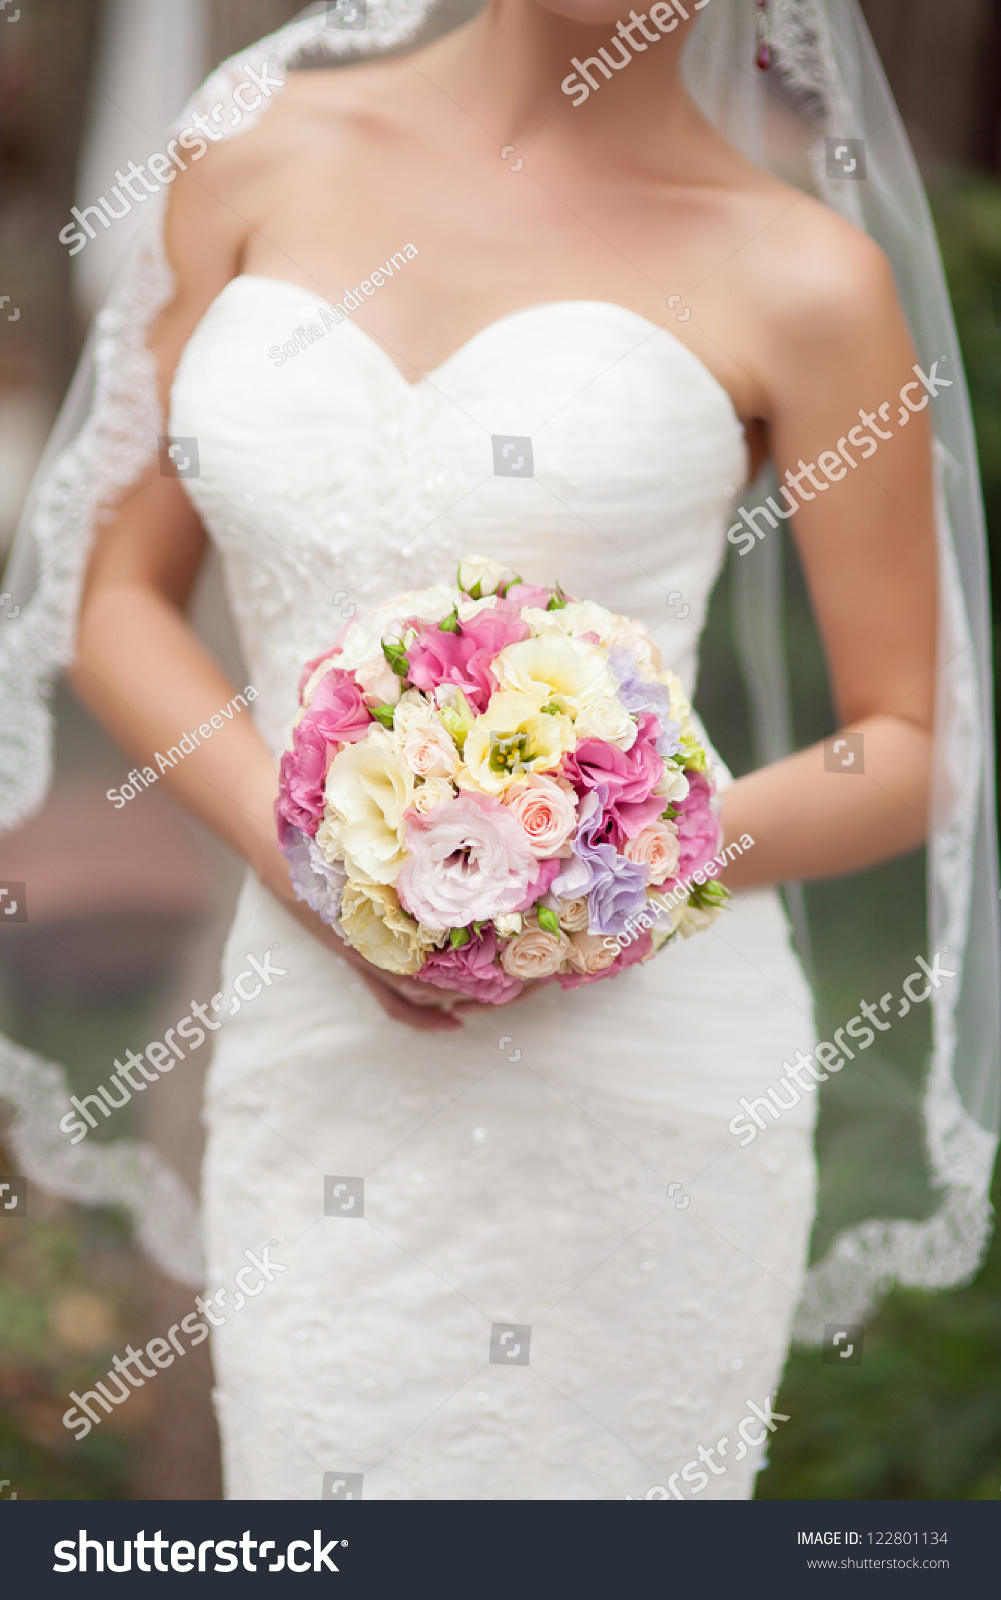 Bride holding beautiful wedding bouquet purple stock photo edit now bride holding beautiful wedding bouquet of purple pink yellow and white flowers slim izmirmasajfo